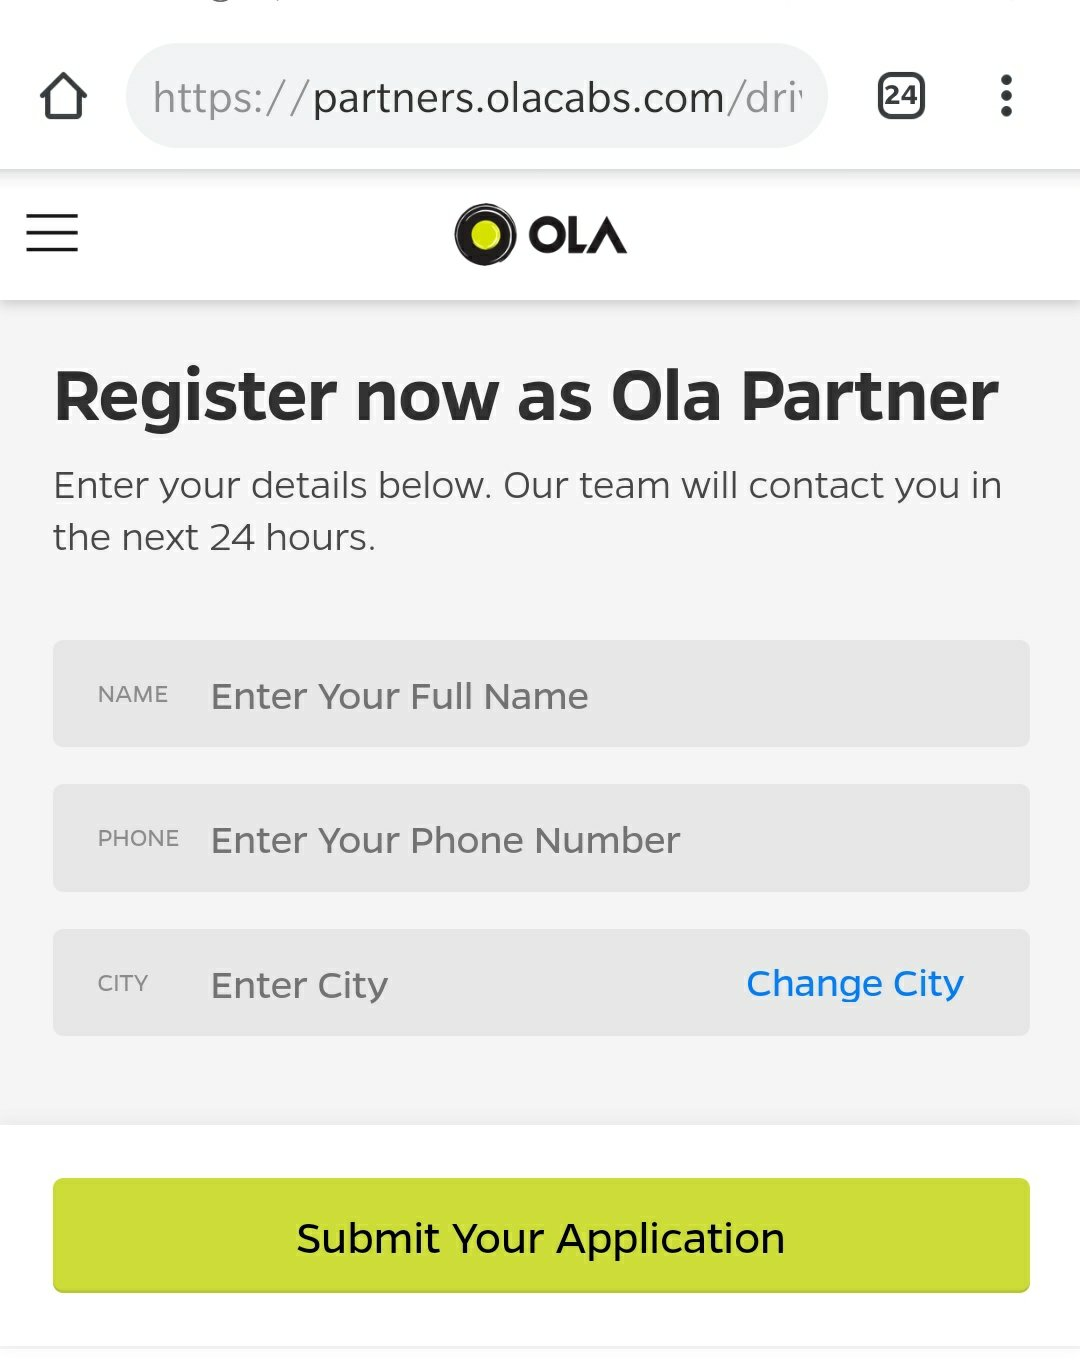 Registration Process for Ola